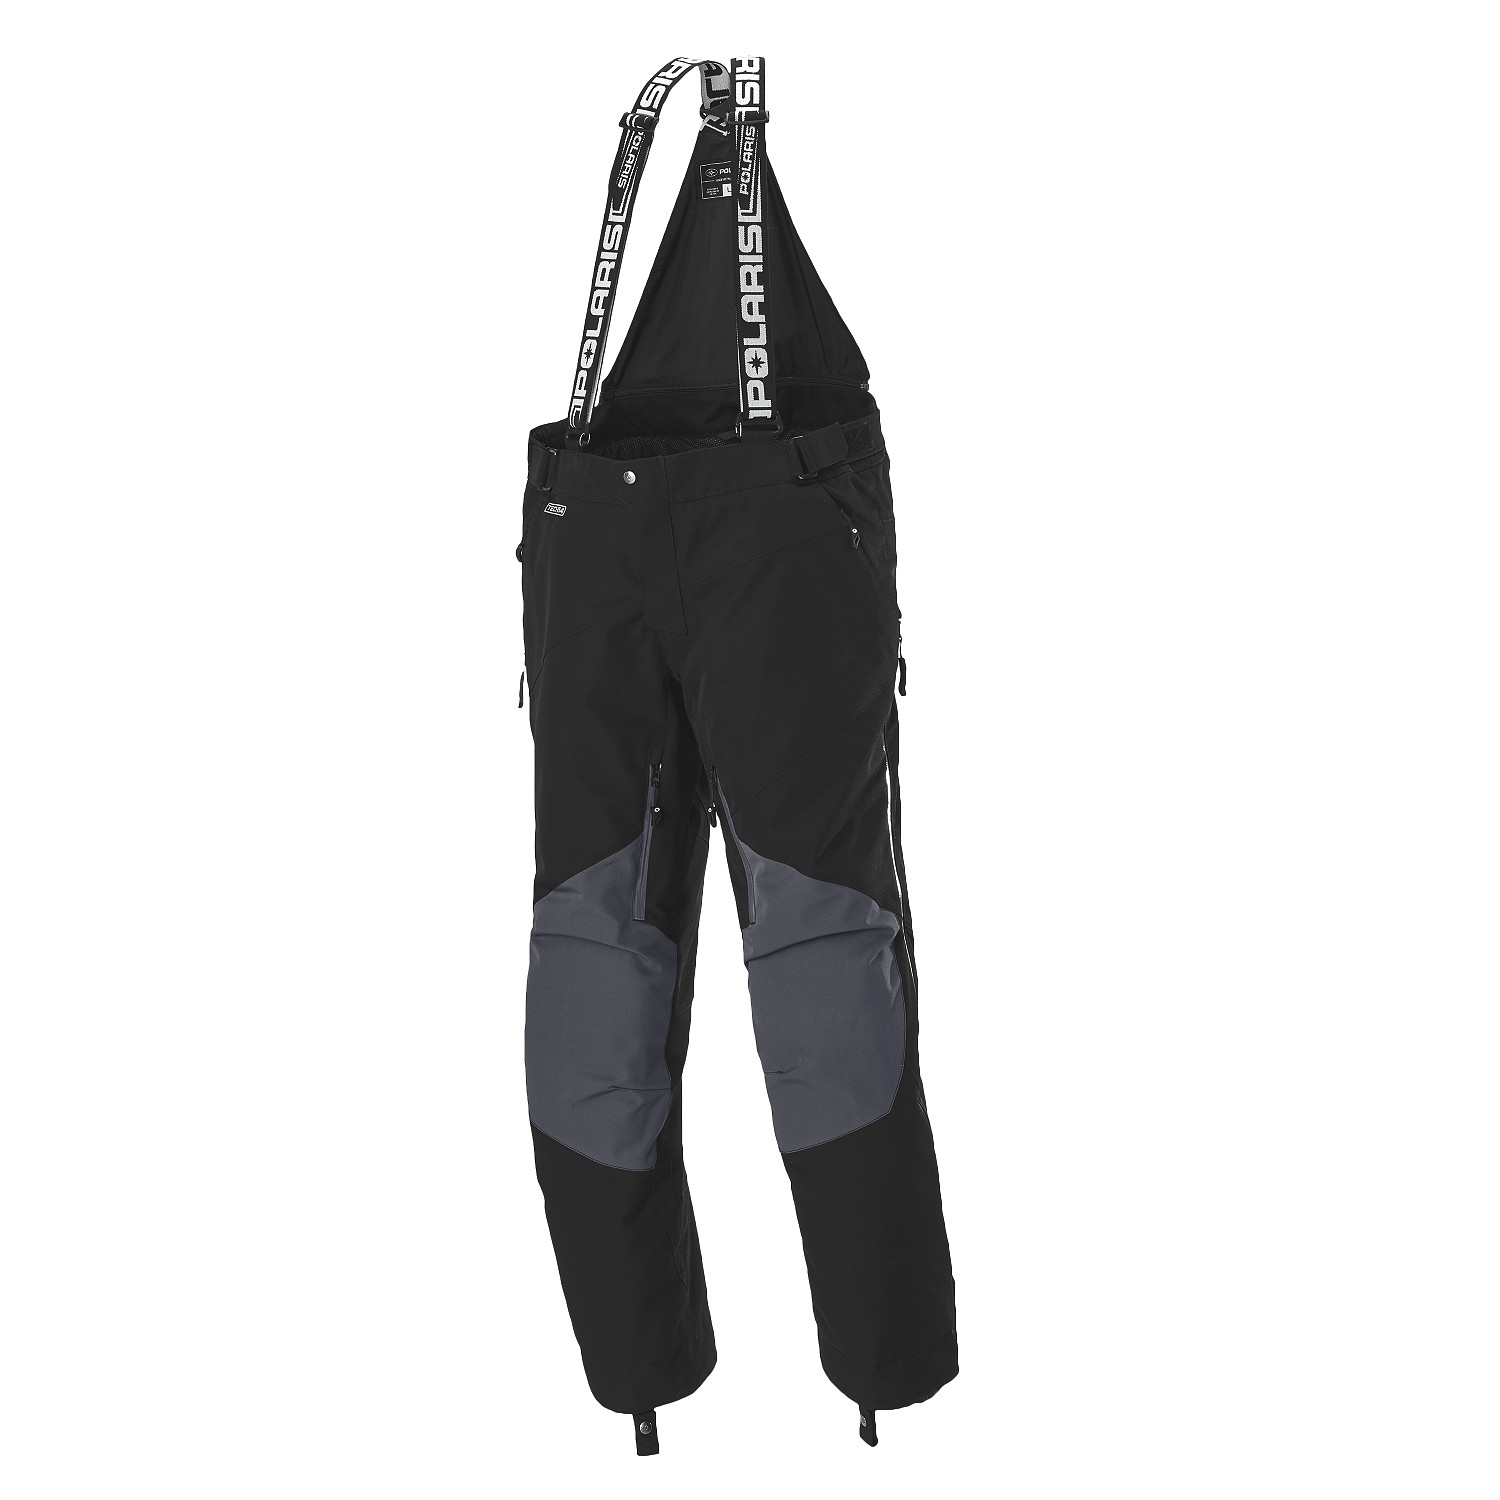 Men's TECH54™ Switchback Bib Snow Pants with Waterproof Breathable Membrane, Black